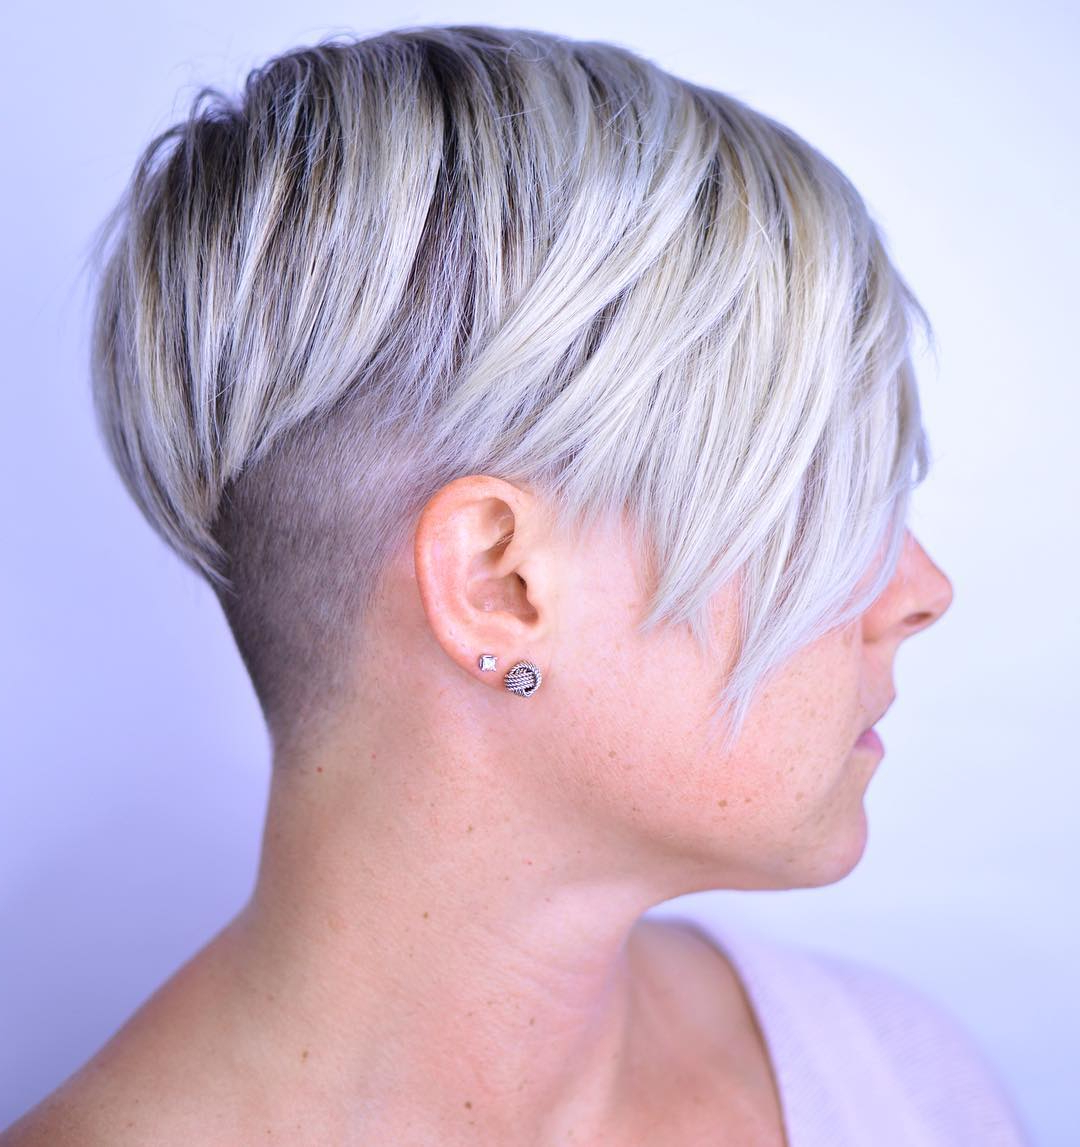 20 Bold And Daring Takes On The Shaved Pixie Cut With Regard To Pixie Bob Hairstyles With Nape Undercut (View 5 of 20)